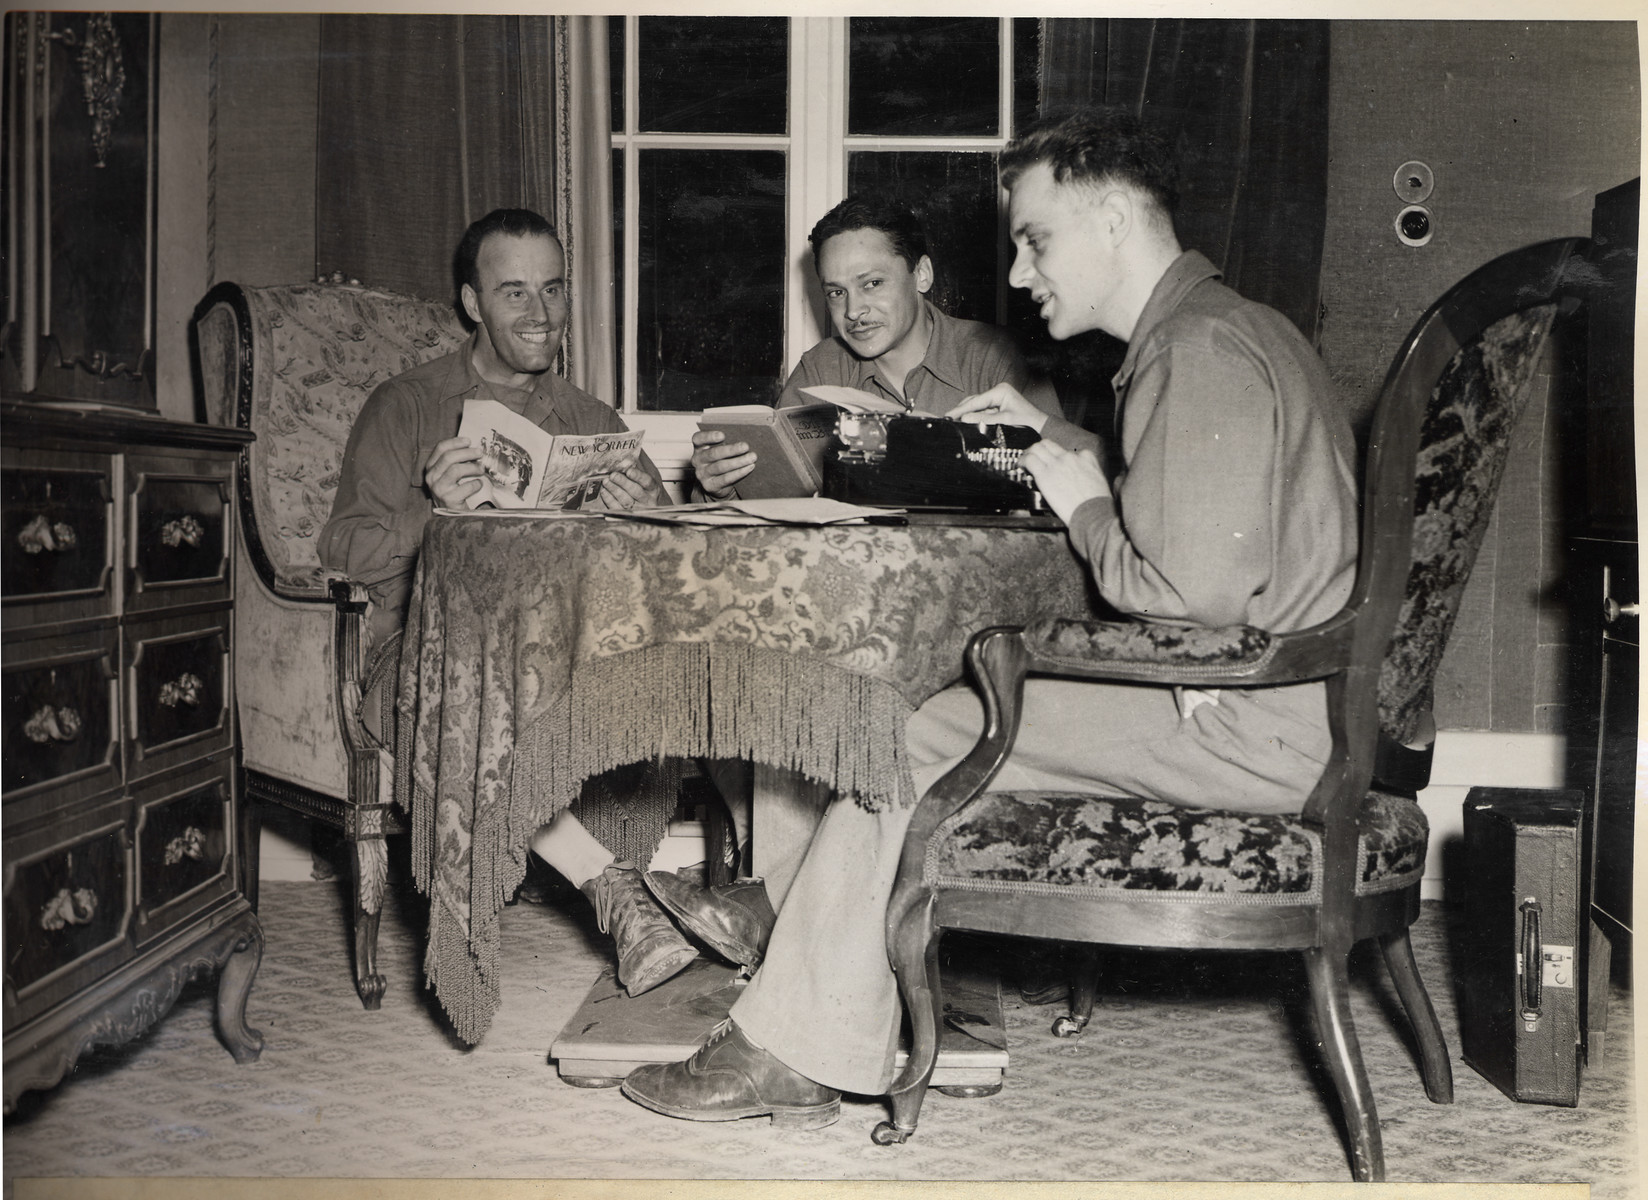 Joseph Eaton, an American soldier assigned to the 4th Communications Unit, types a report in the home that had formerly belonged to an SS doctor.  Also pictured are Dan Oliva and his driver, Hank Blanck.